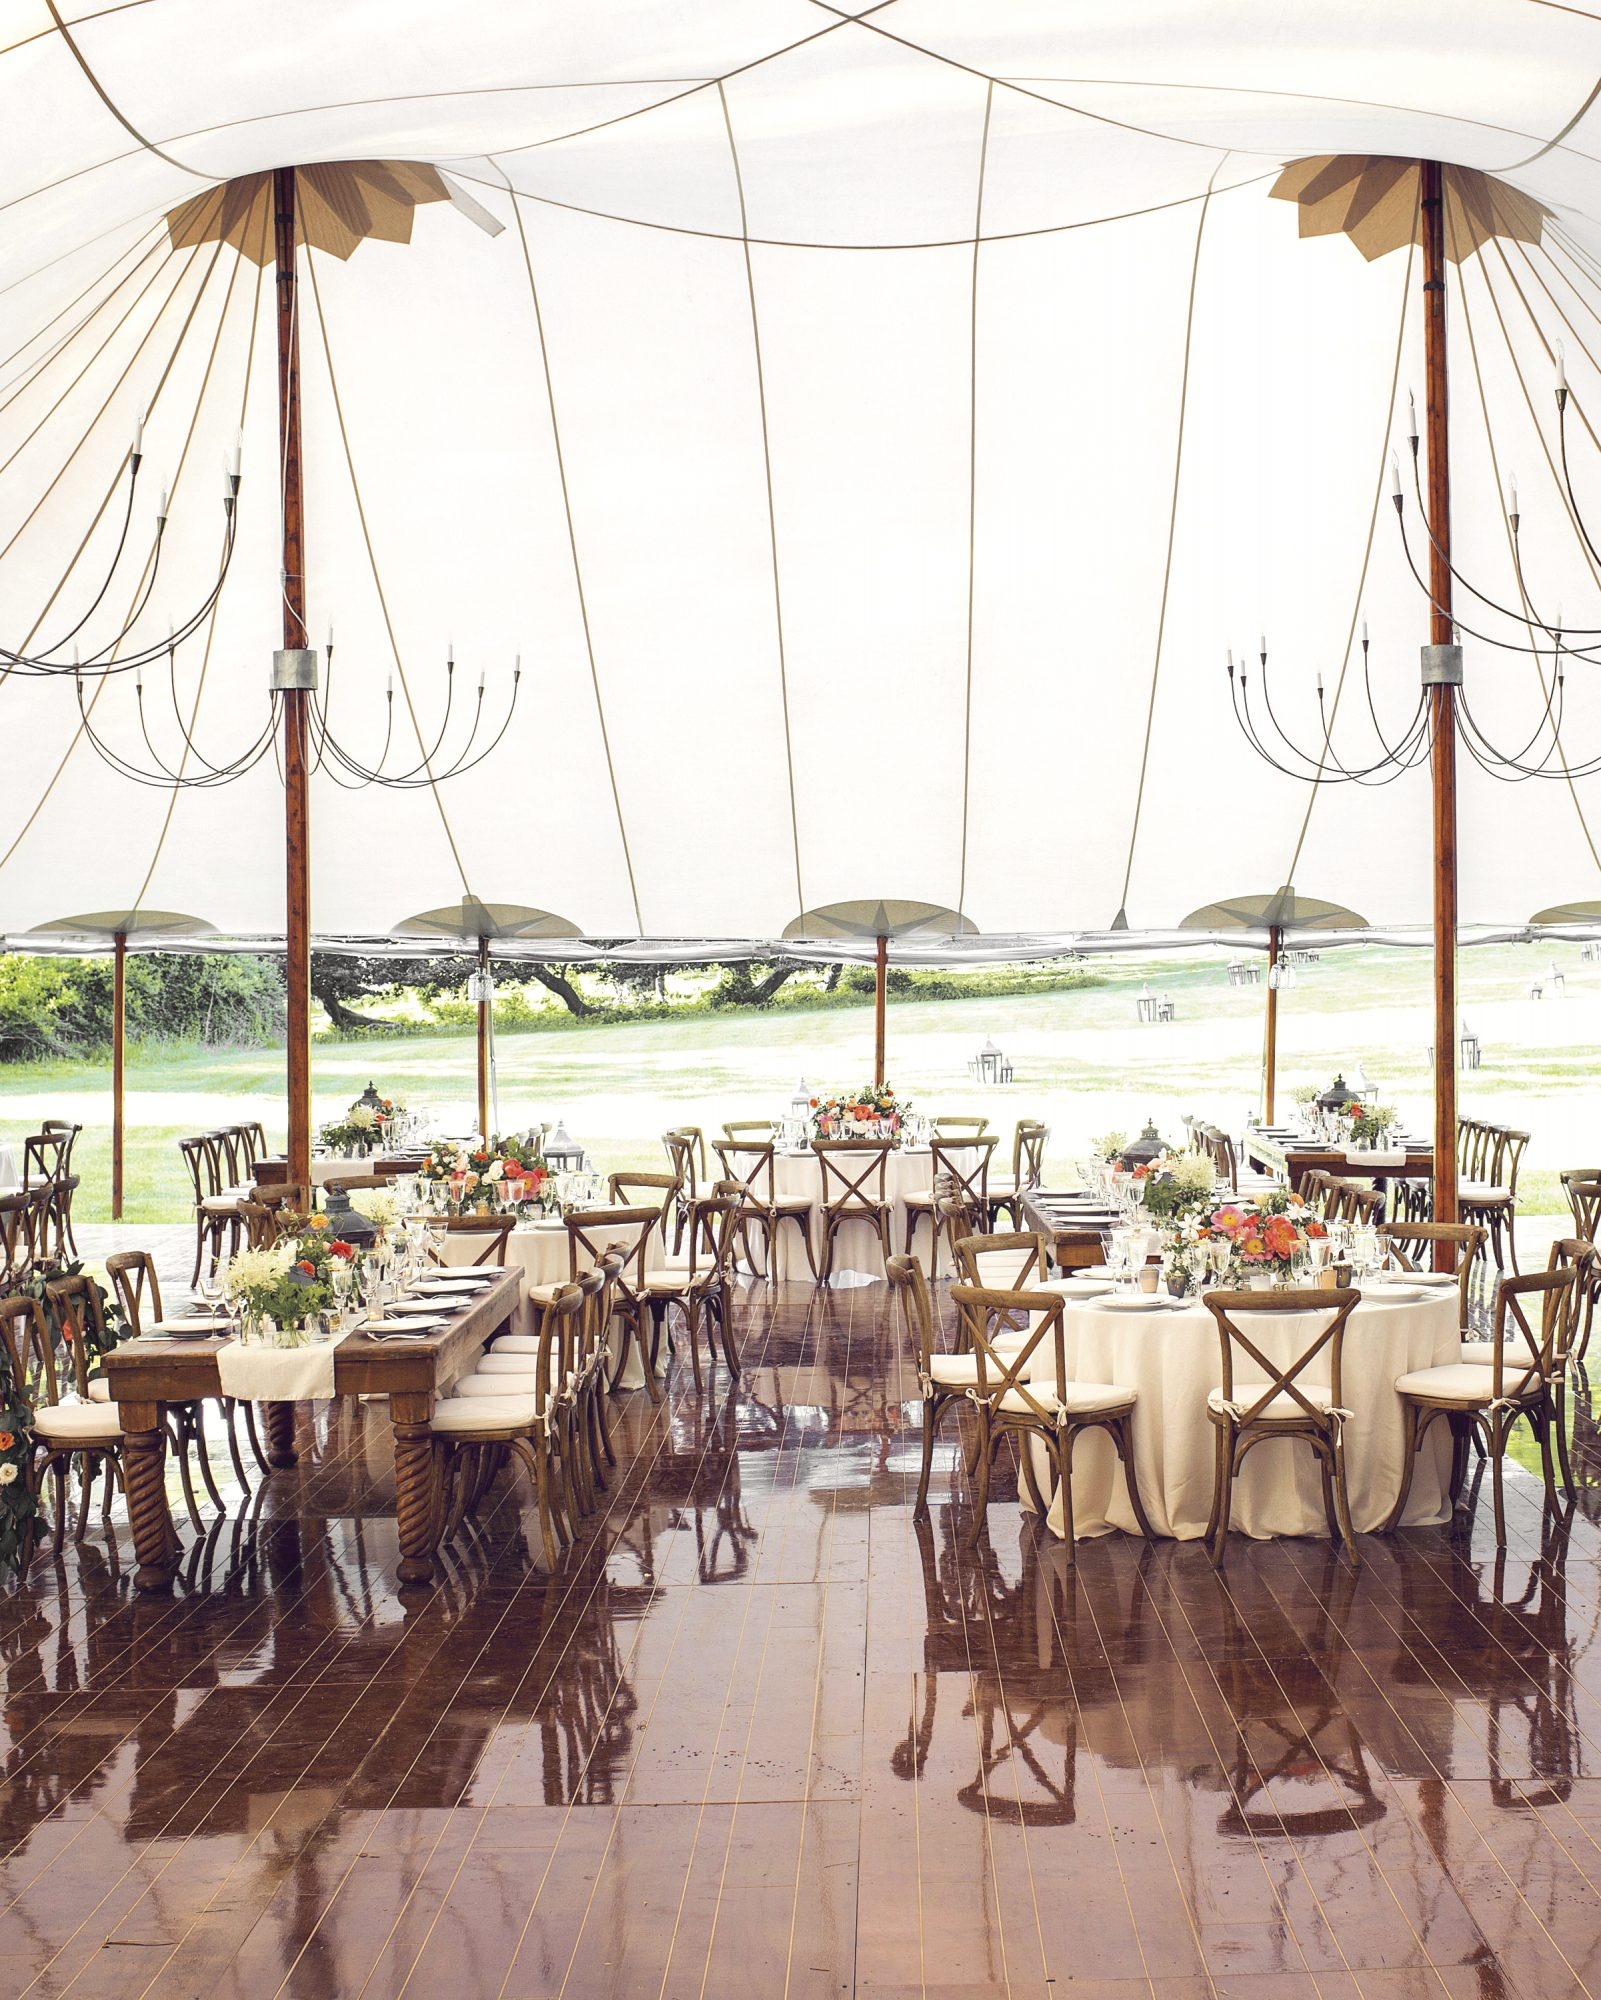 tents-tables-christian-oth-no-watermark-s112402.jpg